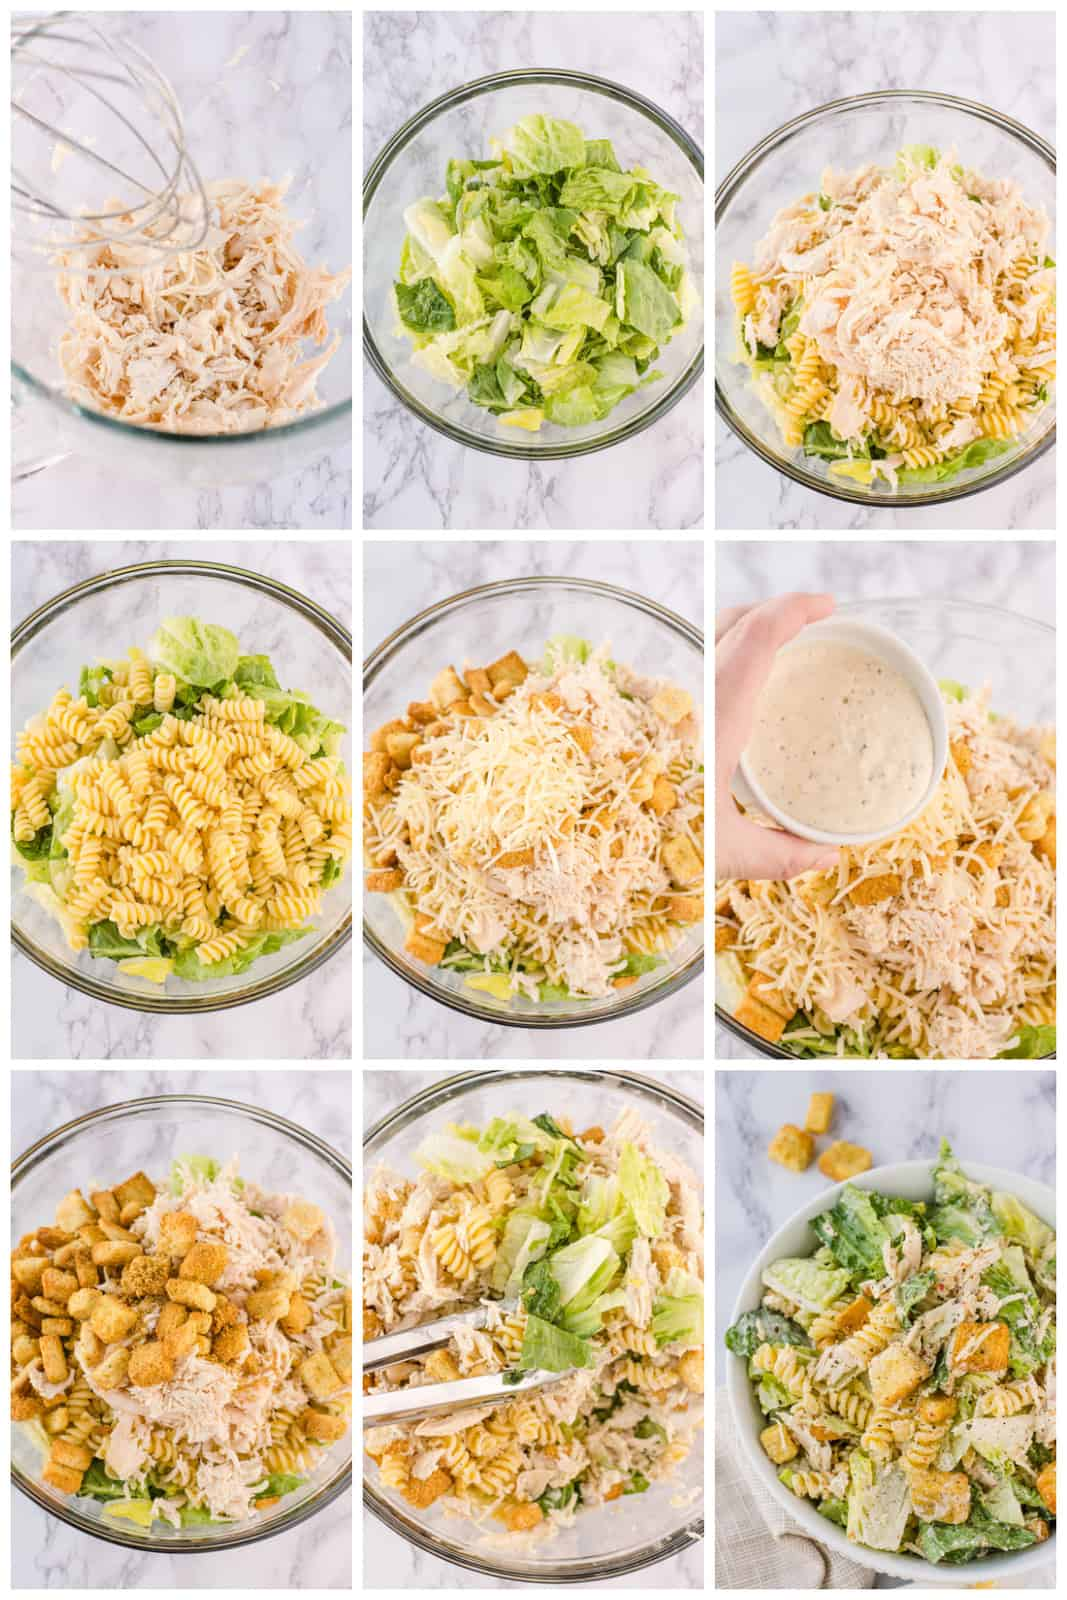 Step by step photos for making a Chicken Caesar Pasta Salad